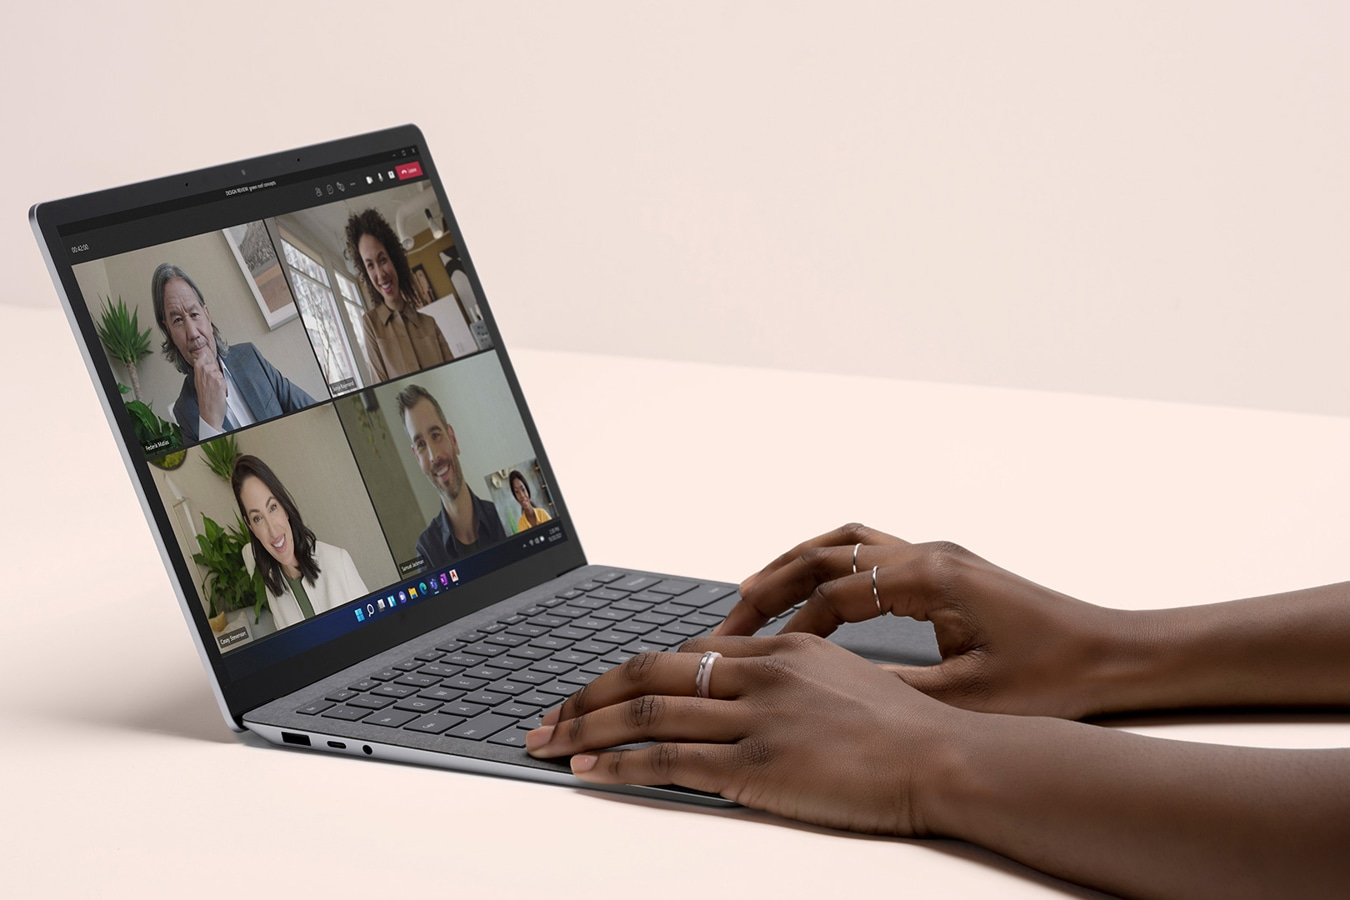 Microsoft Teams is observed on the screen of a Surface Laptop 4 device, with a person's hands laid down on the keyboard